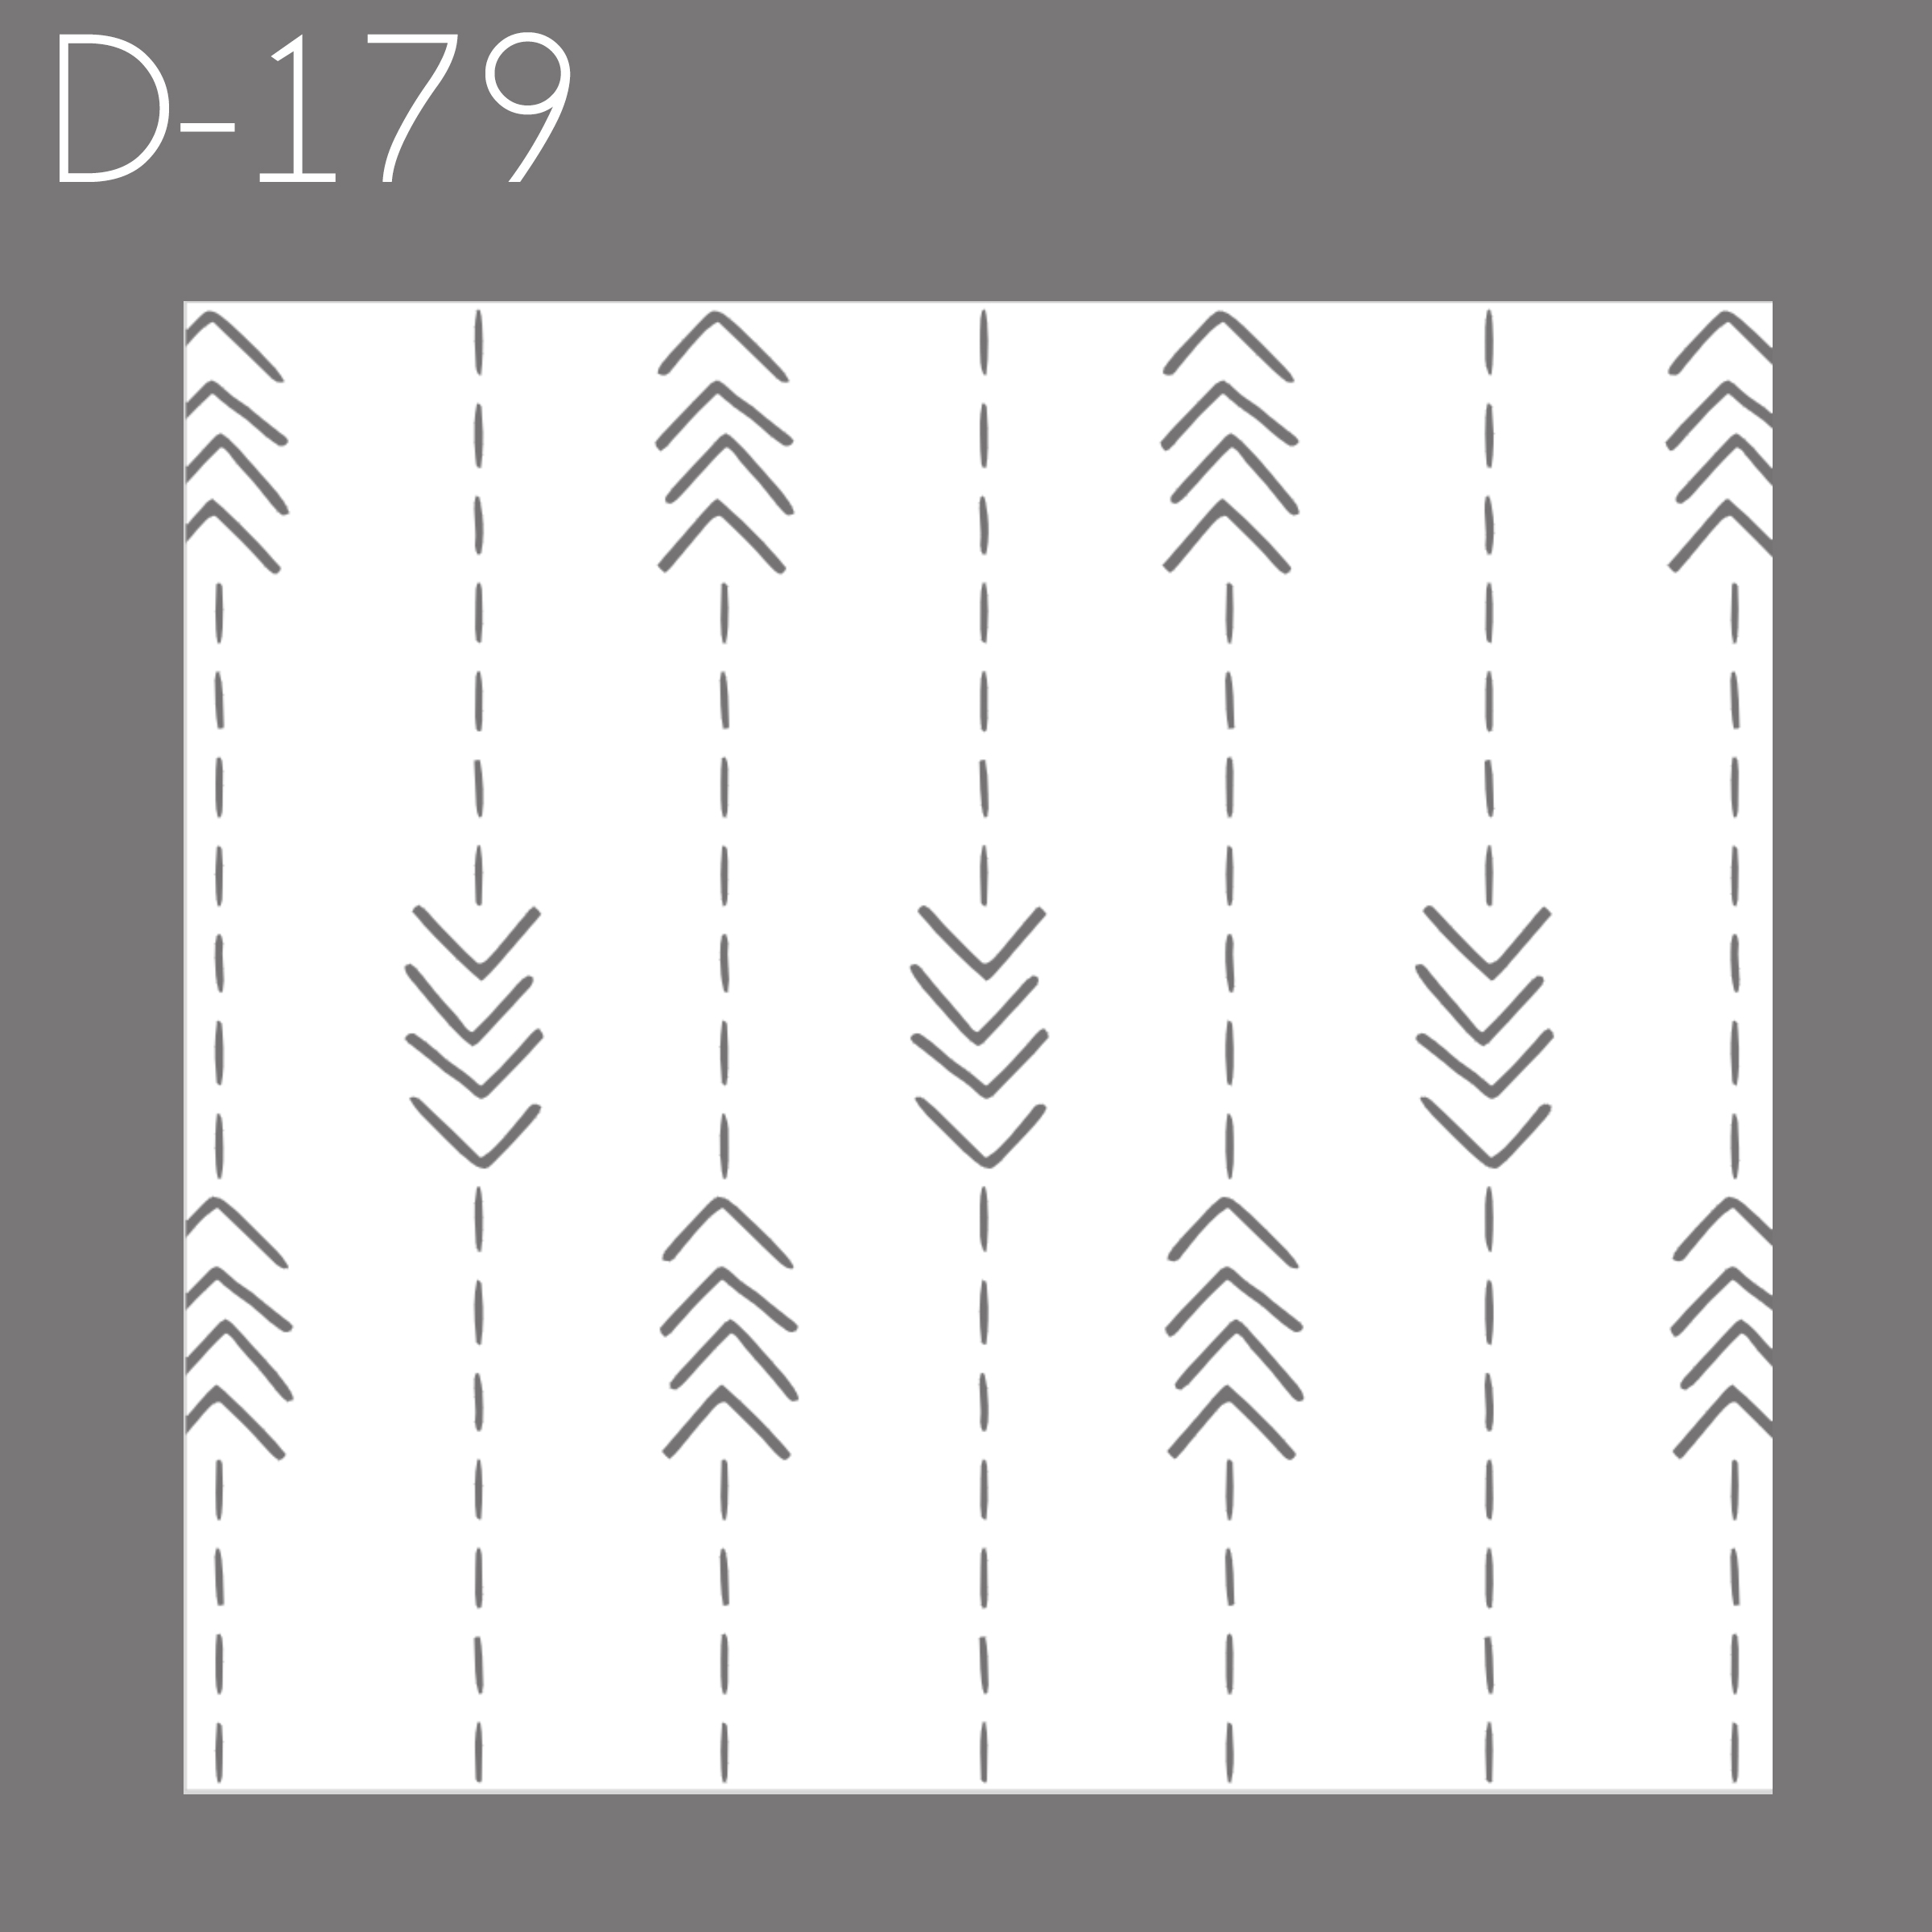 D179 - Pattern Arrows.jpg